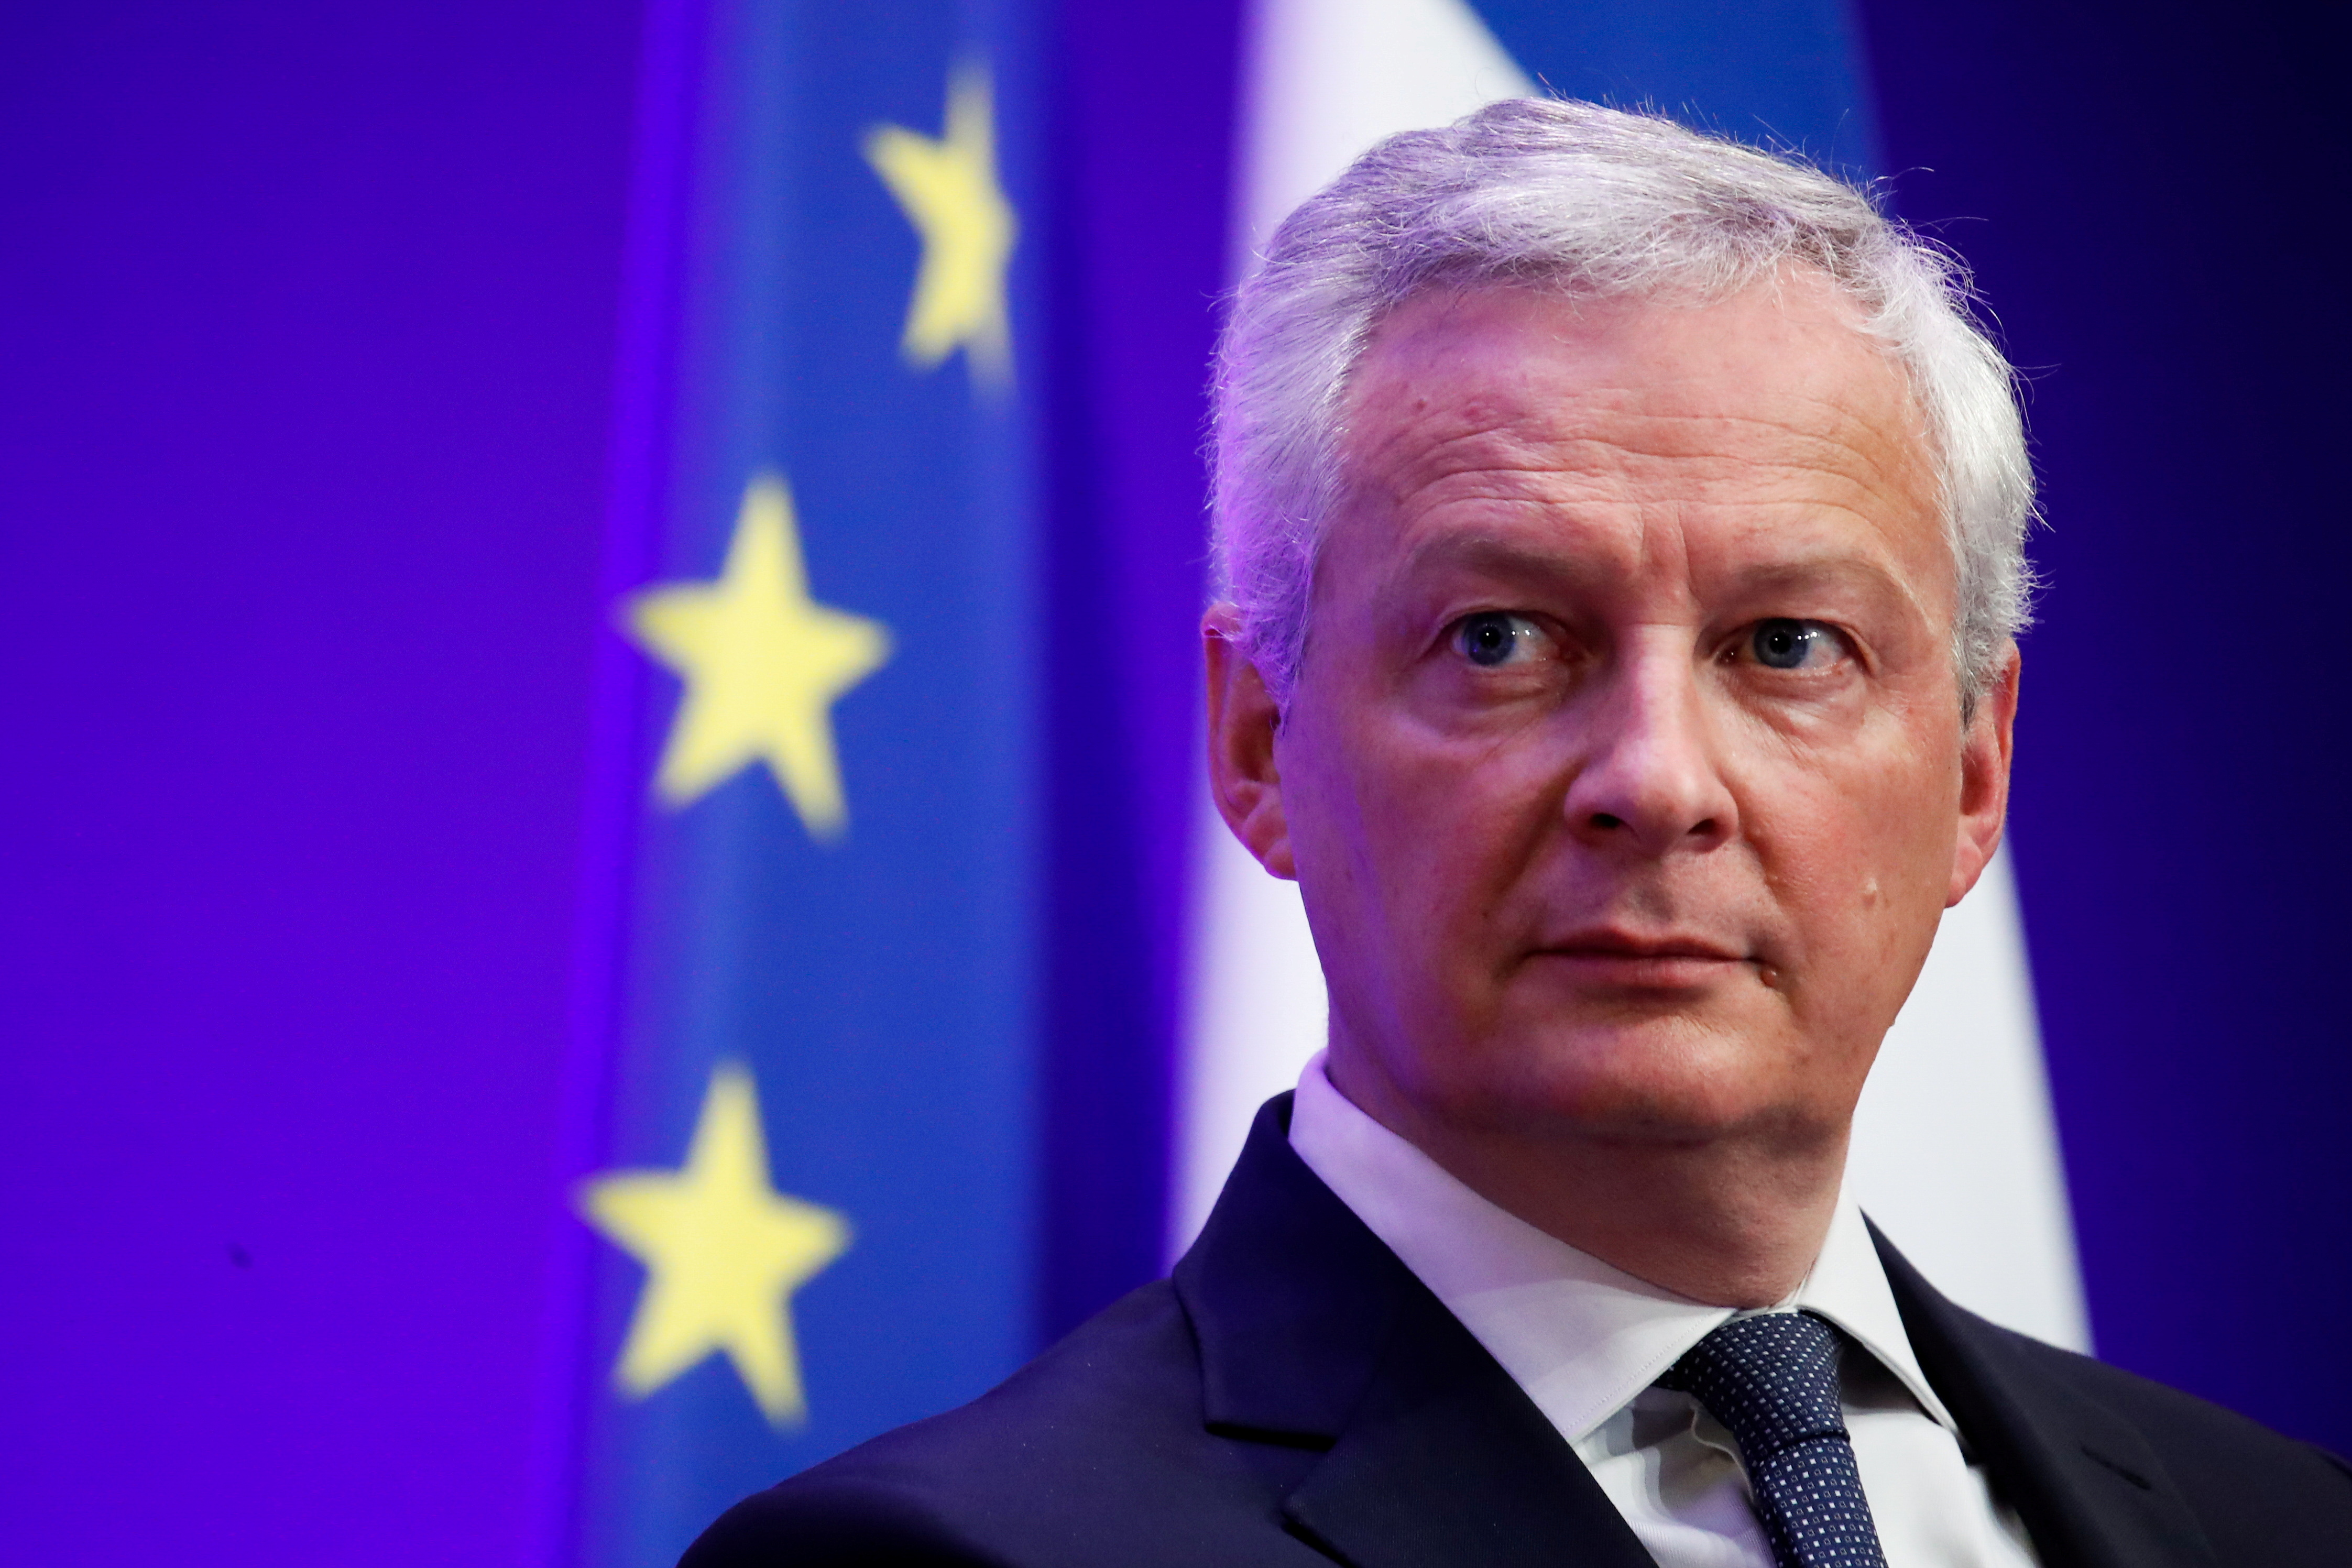 French Economy and Finance Minister Bruno Le Maire attends a news conference to present French government 2022 budget at the Bercy Finance Ministry in Paris, France, September 22, 2021. REUTERS/Gonzalo Fuentes